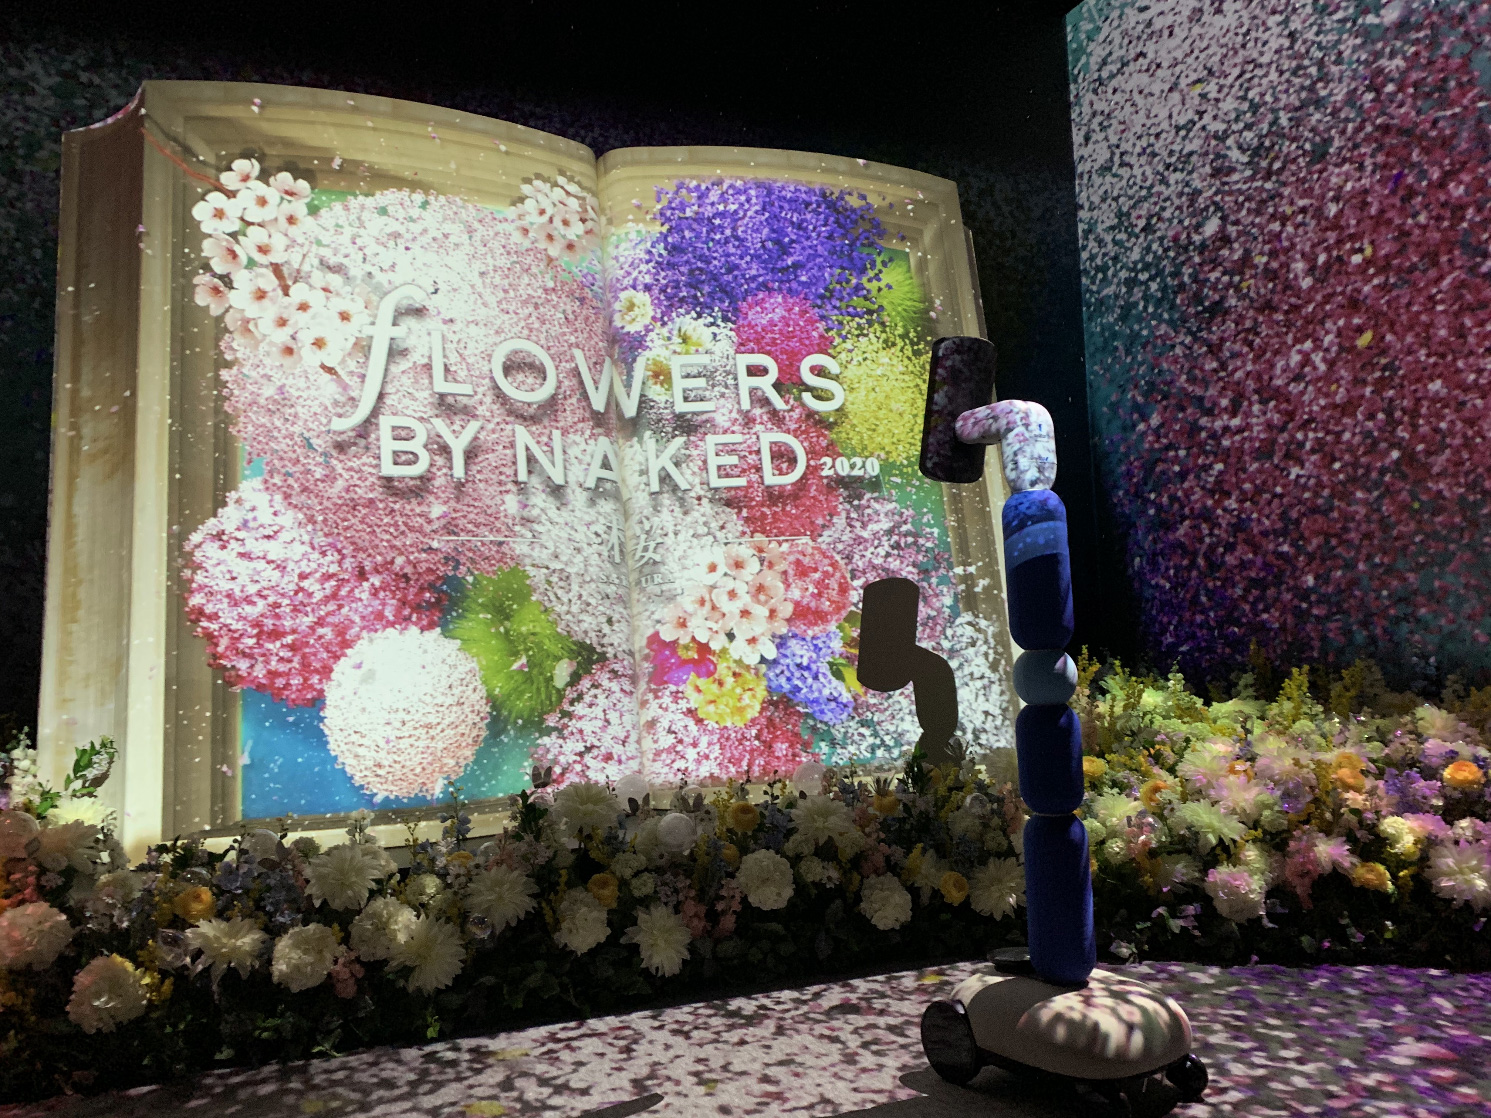 avatar-in museum サービス実証|FLOWERS BY NAKED 2020 −桜−